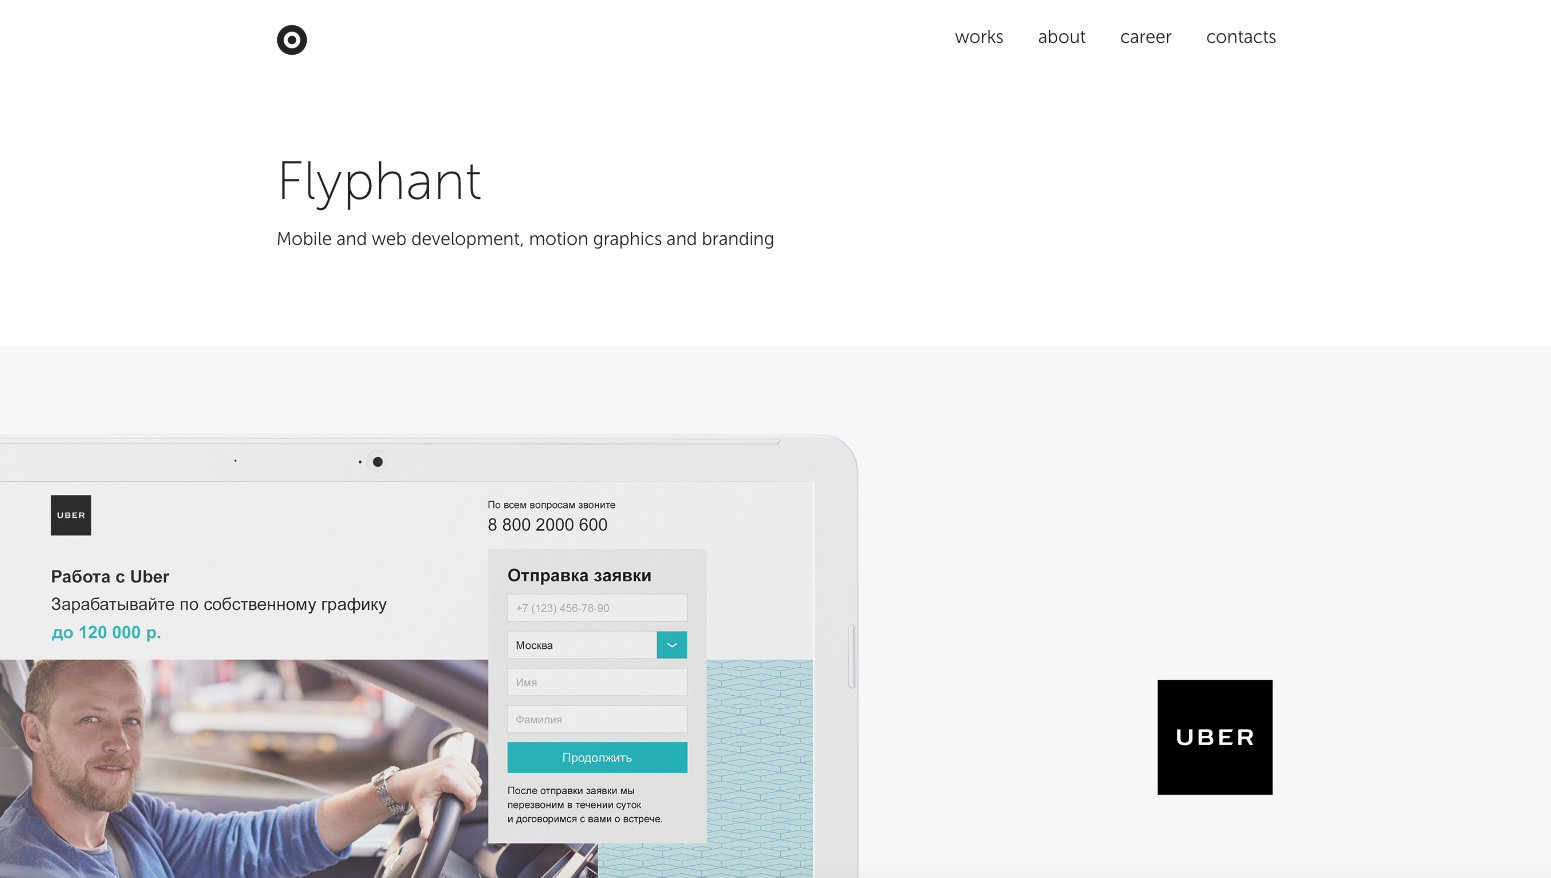 Flyphant - Moscow - Agency - Digital